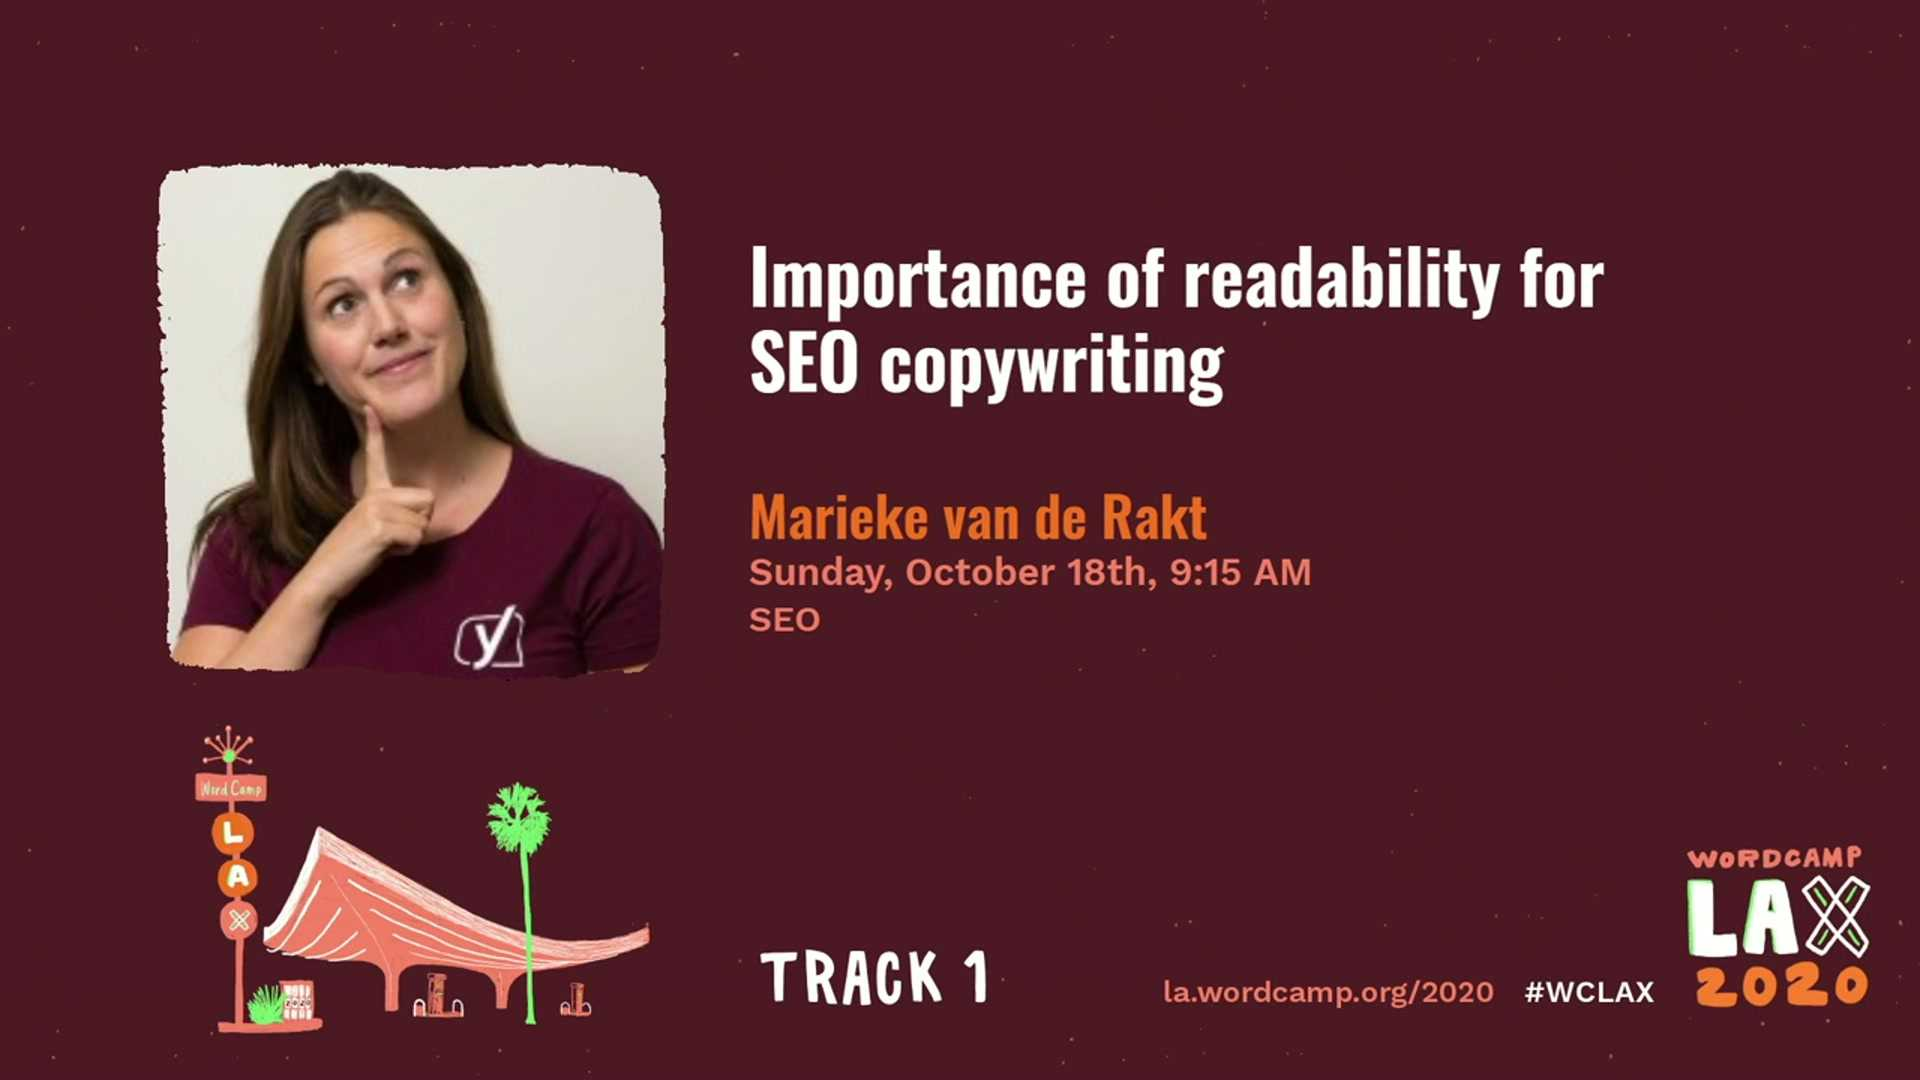 Marieke van de Rakt: Importance of Readability For SEO Copywriting